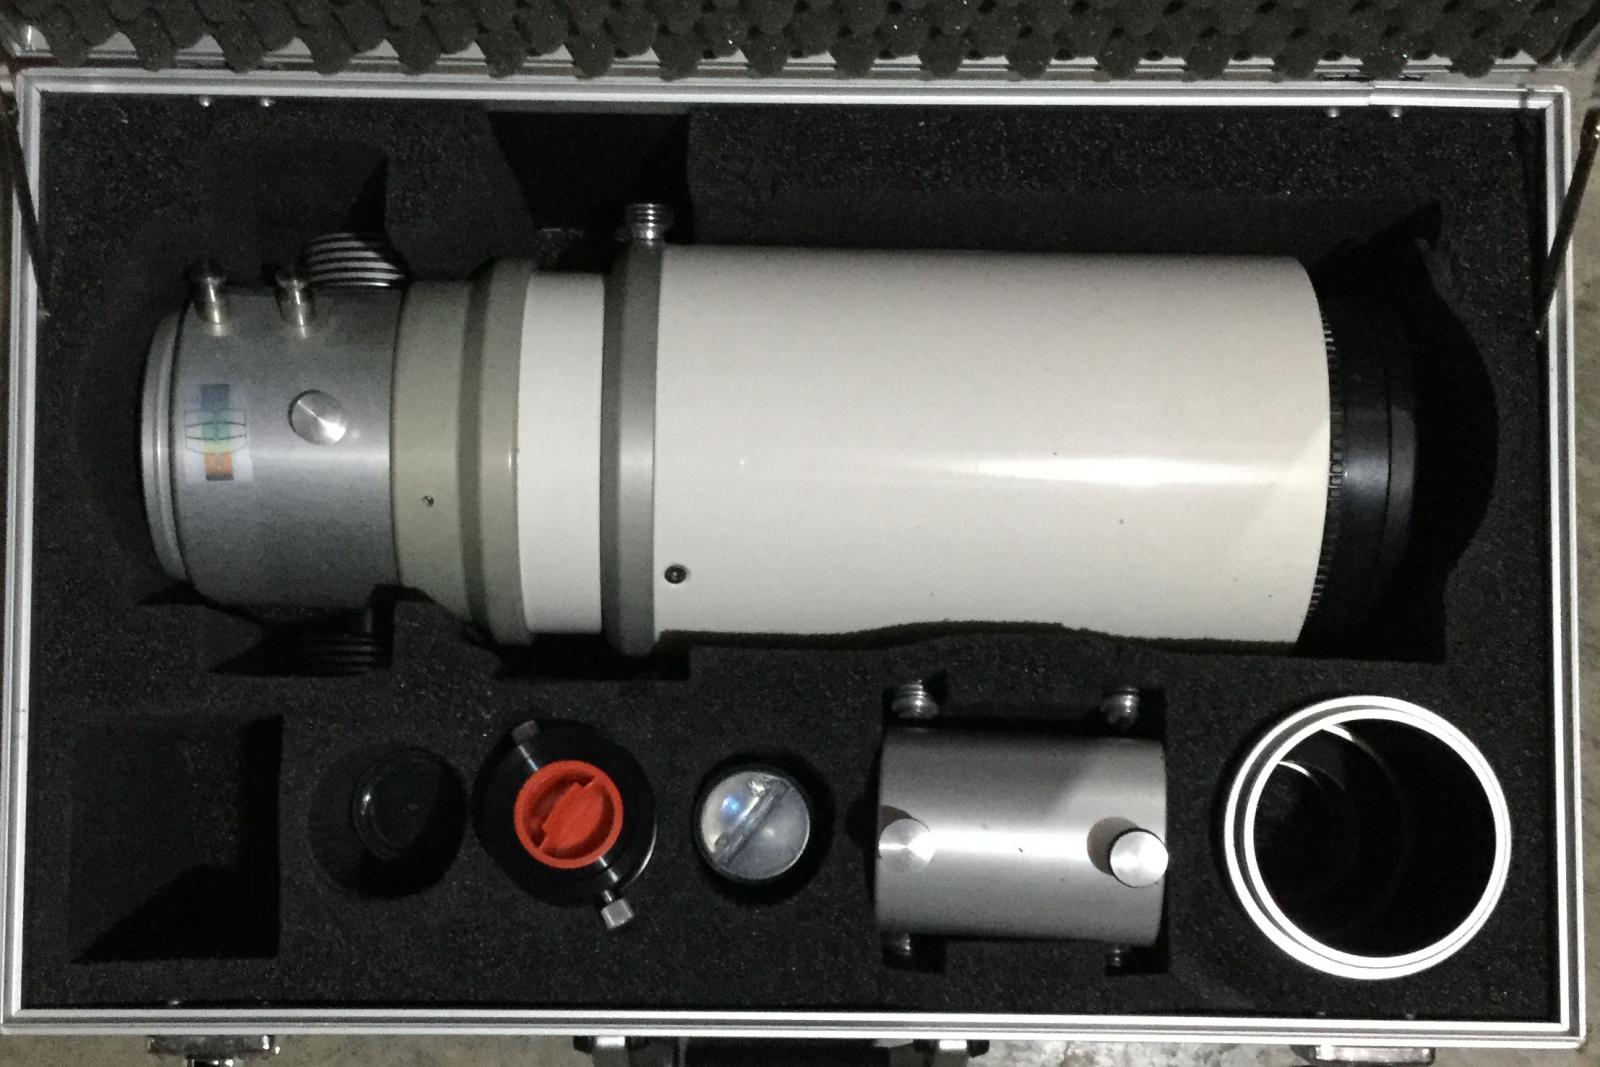 Classic TMB 105 F/6 2 white and gray tube info - Refractors